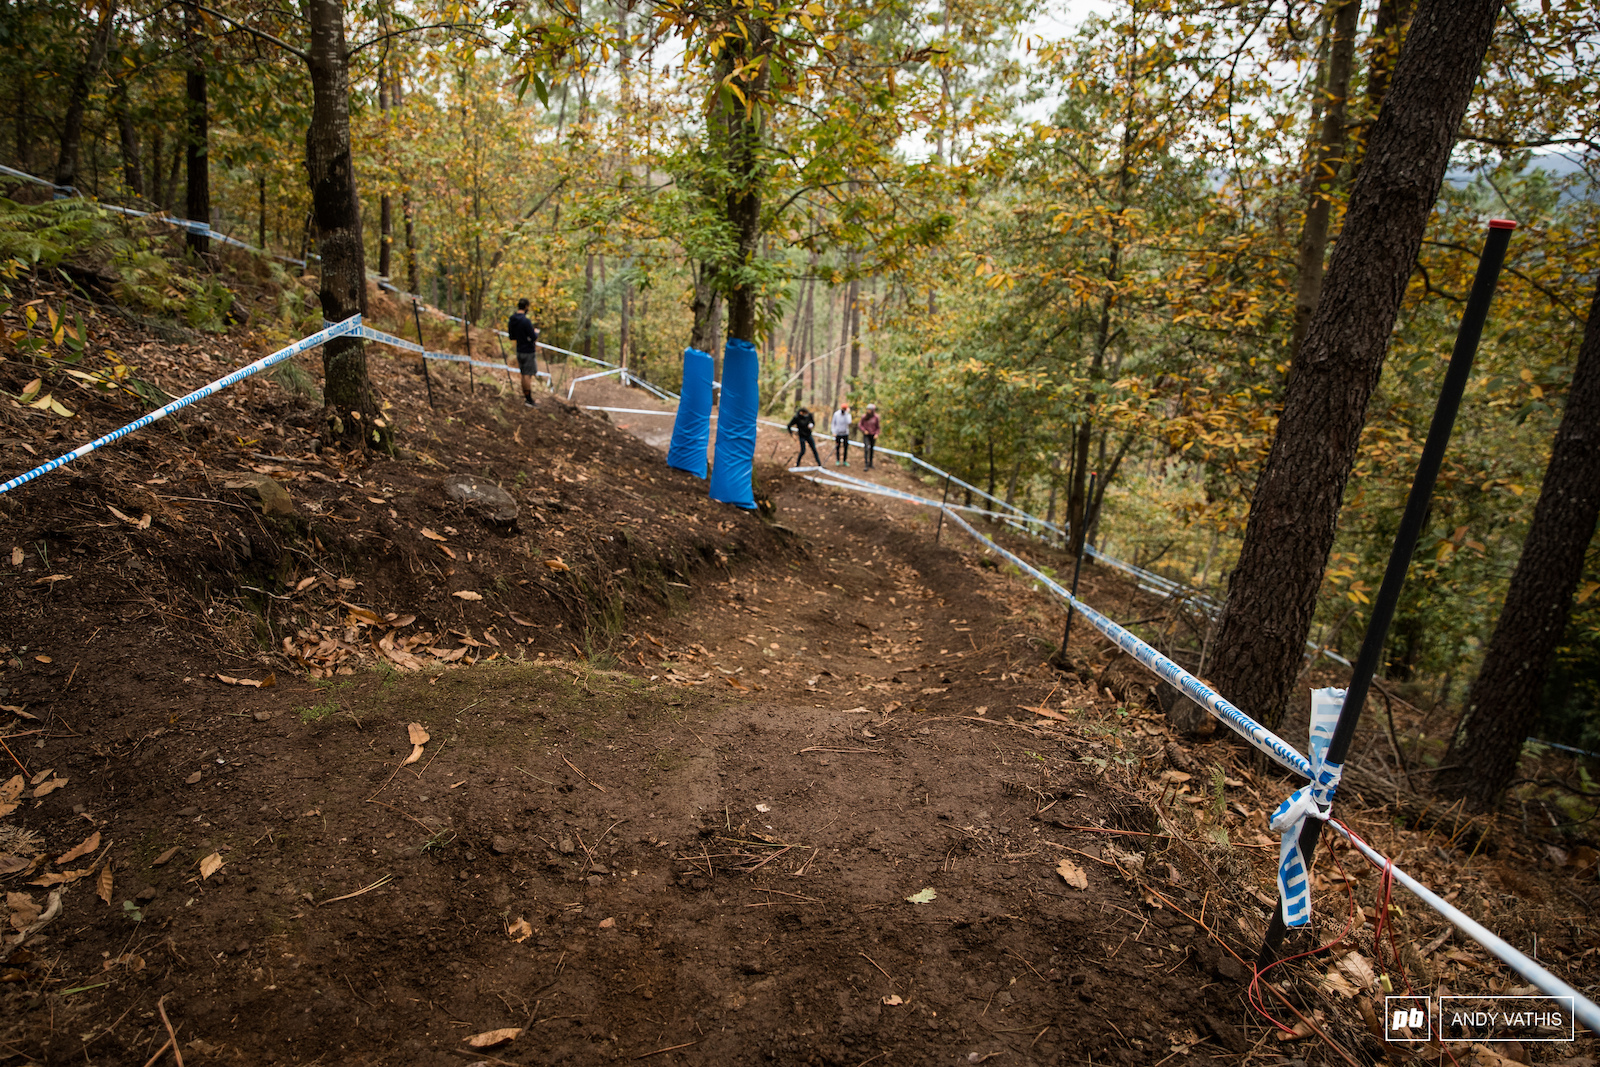 The wide tape sections on this track offer proper line choices that benefit each style of rider differently. Tomorrow s practice will open up lines and put to rest uncertainties.